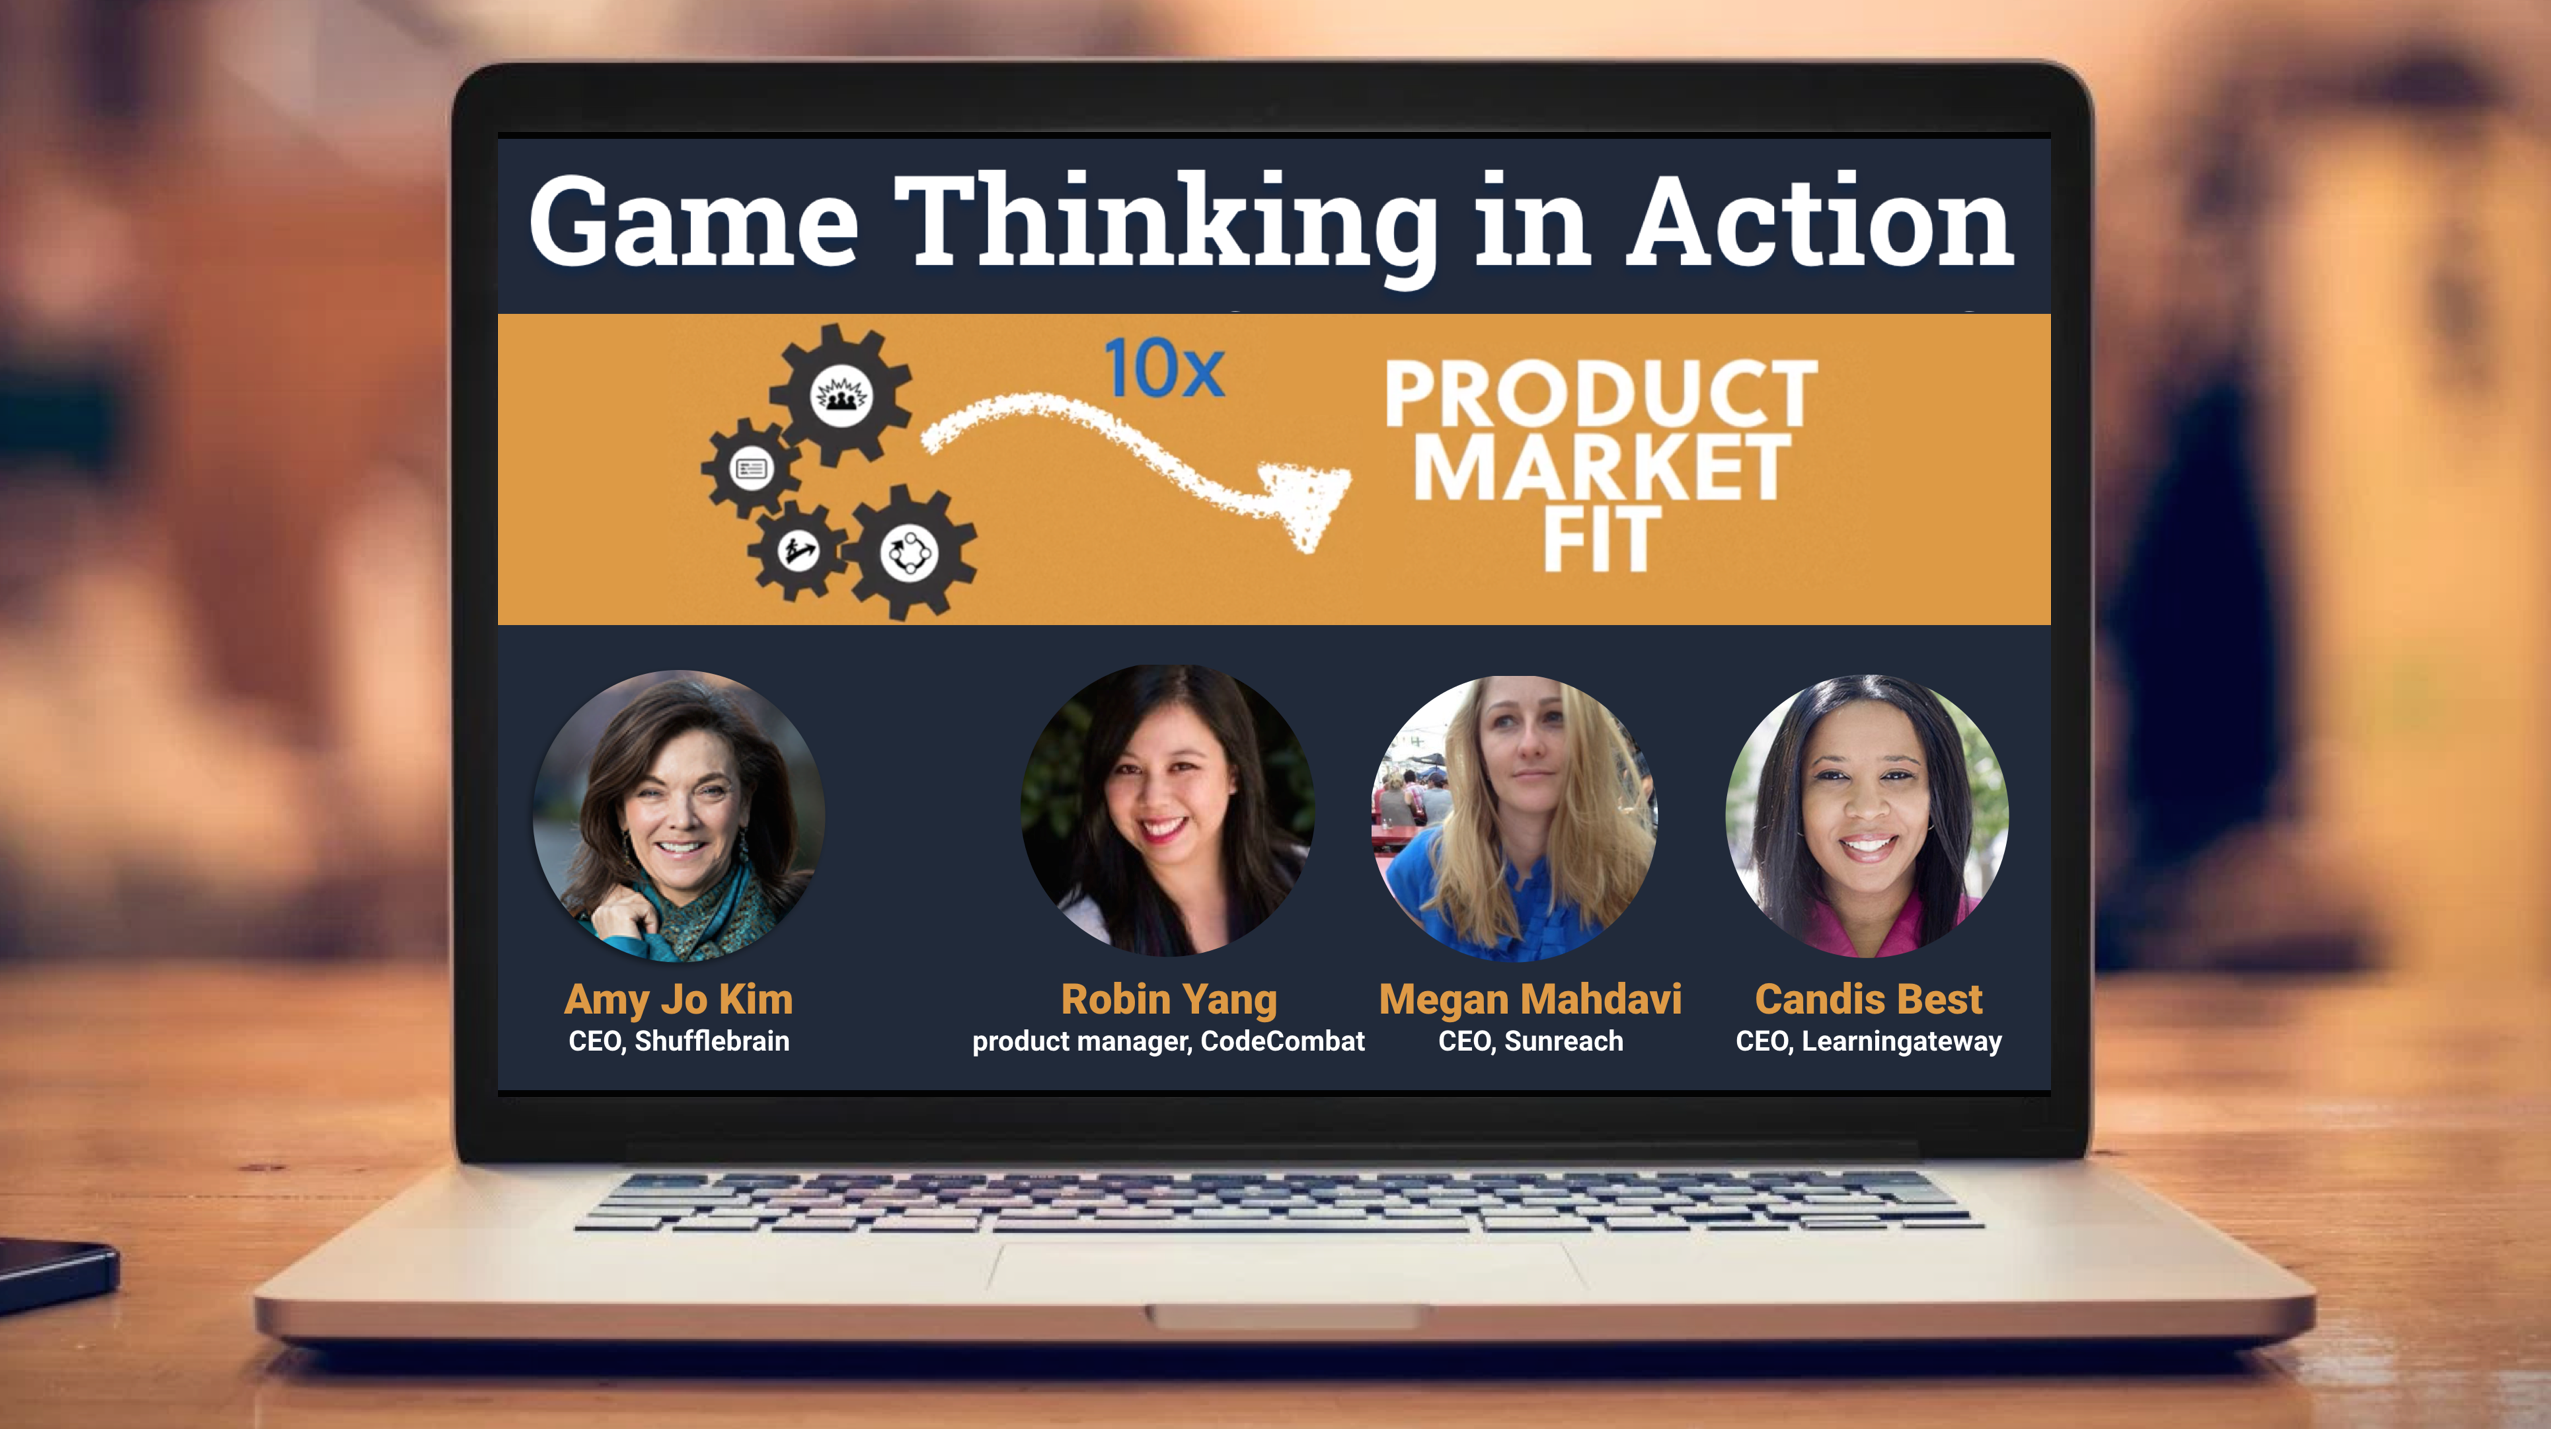 How 3 smart entrepreneurs found product/market fit with Game Thinking